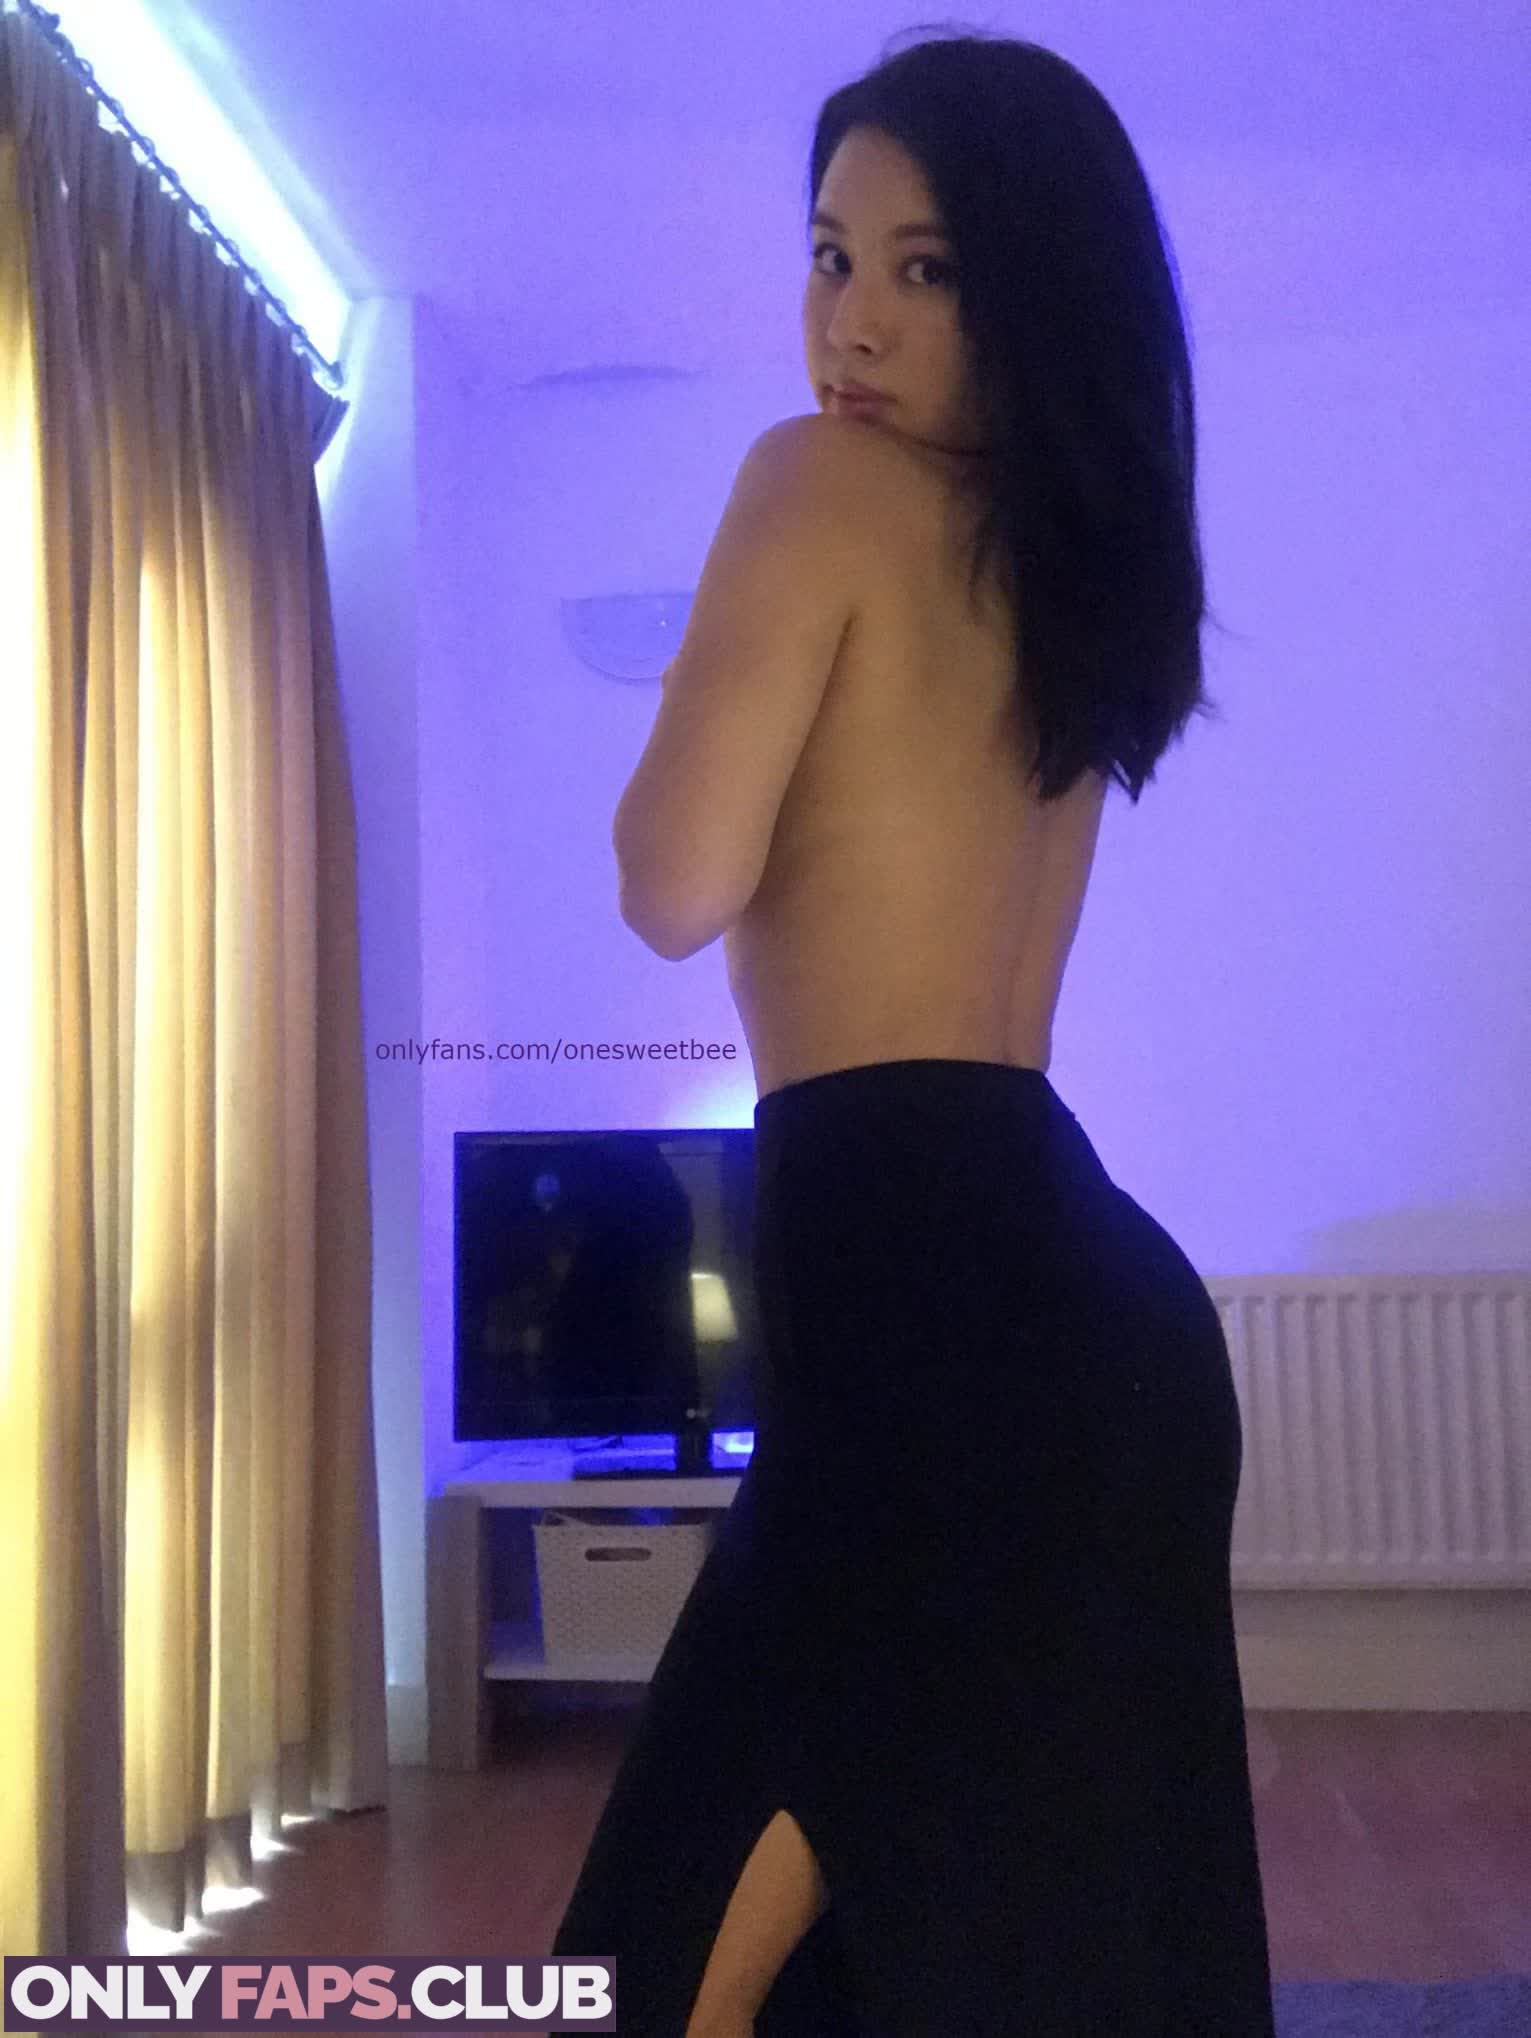 Onesweetbee OnlyFans Leaks (44 Photos)